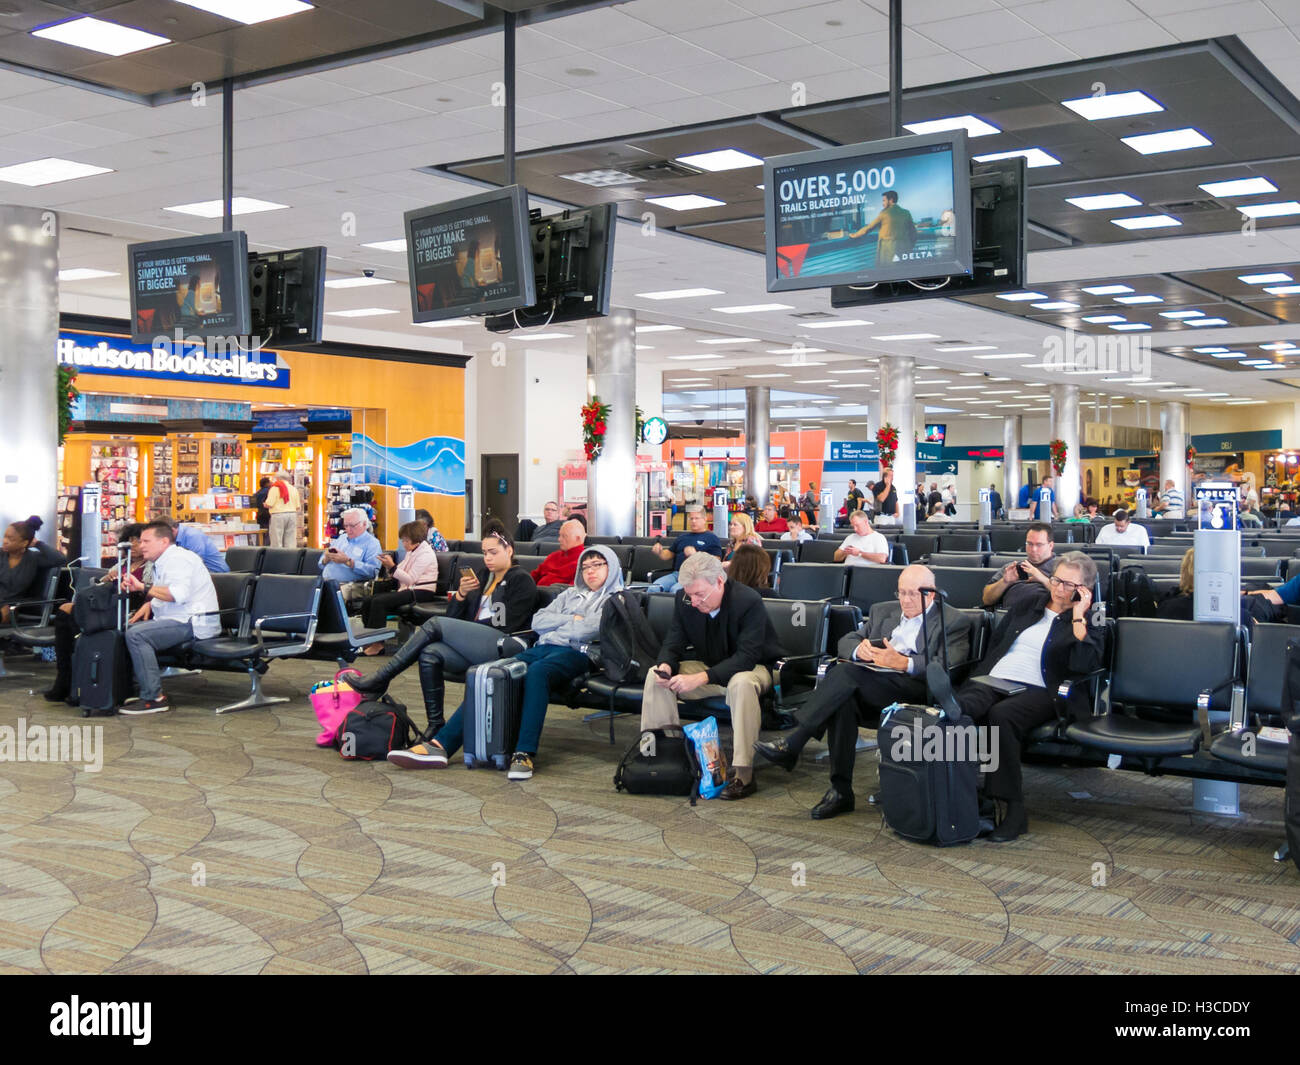 People sitting and waiting on Fort Lauderdale Hollywood International Airport in Florida, USA - Stock Image